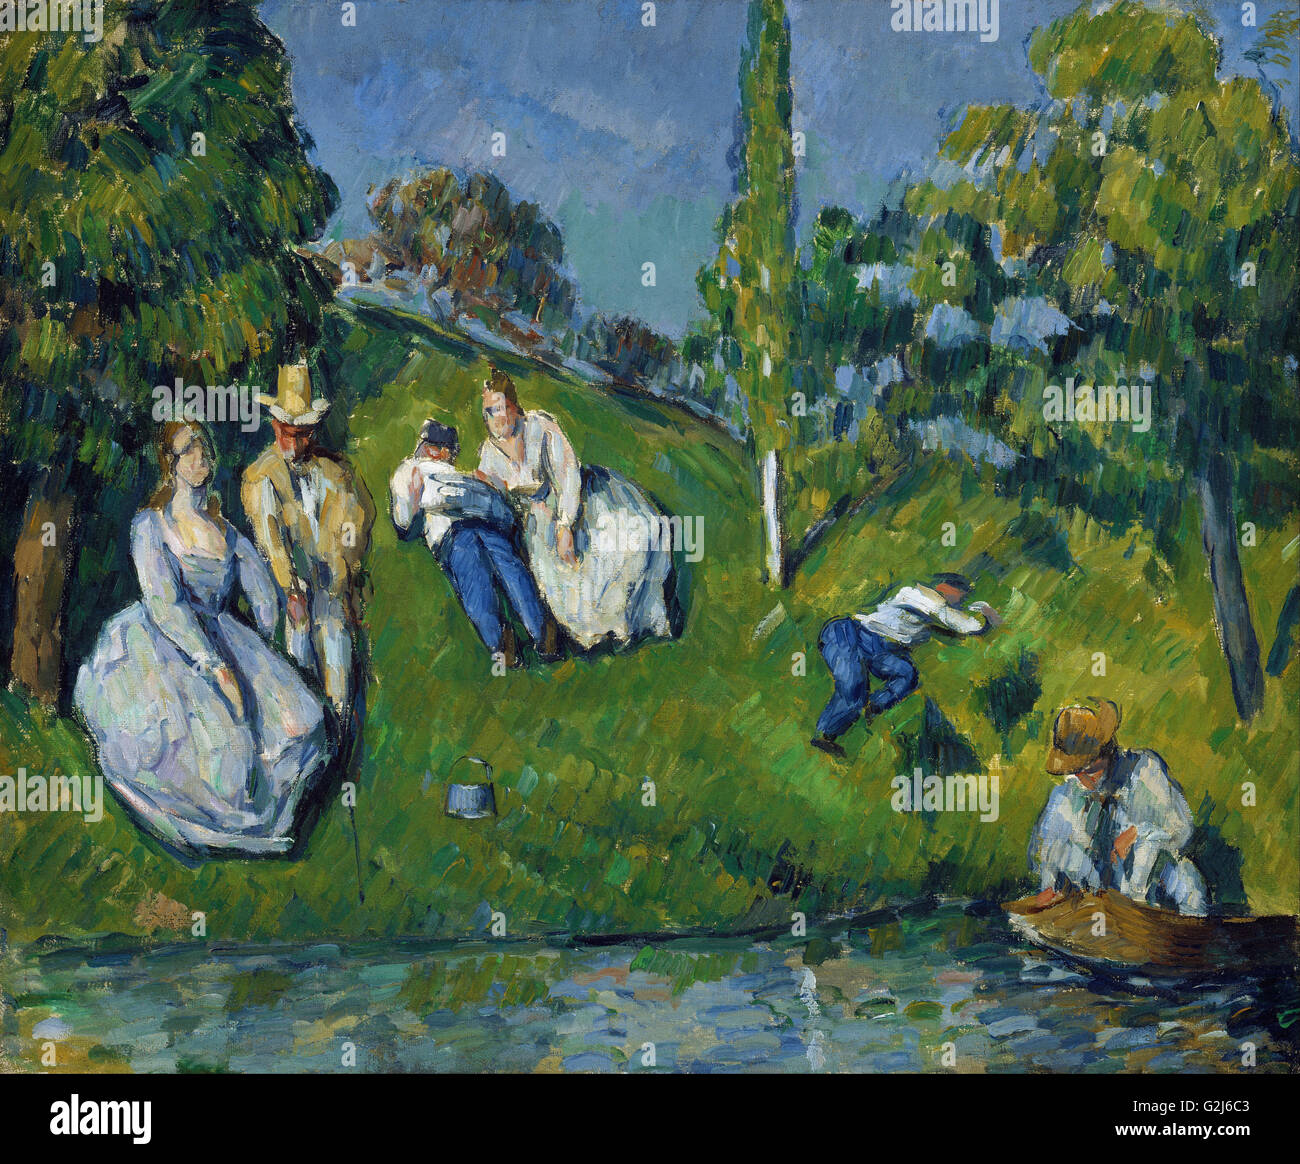 Paul Cézanne - The Pond - Museum of Fine Arts, Boston - Stock Image